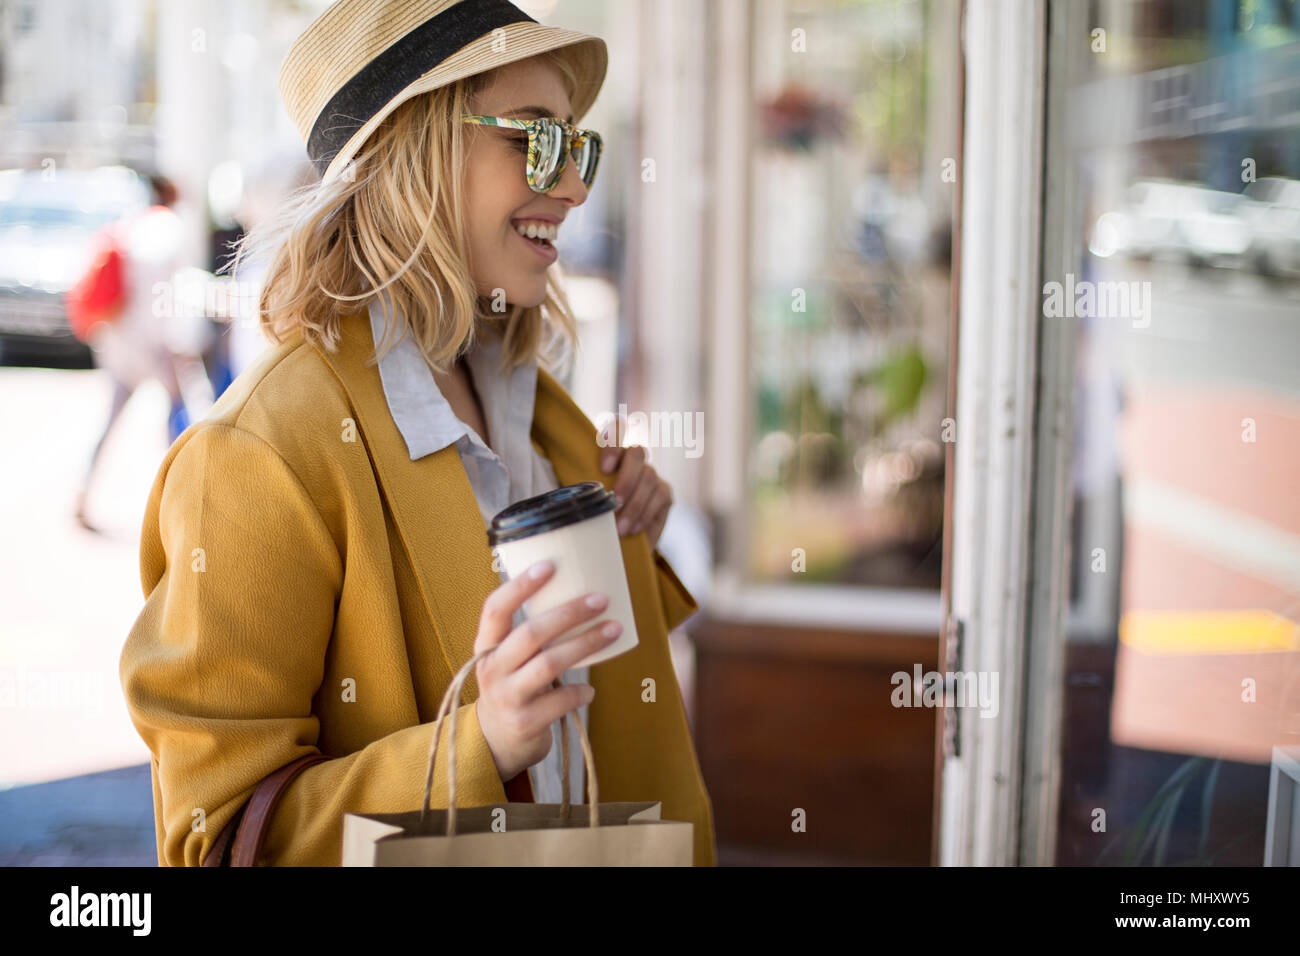 Woman window shopping, Cape Town, South Africa - Stock Image